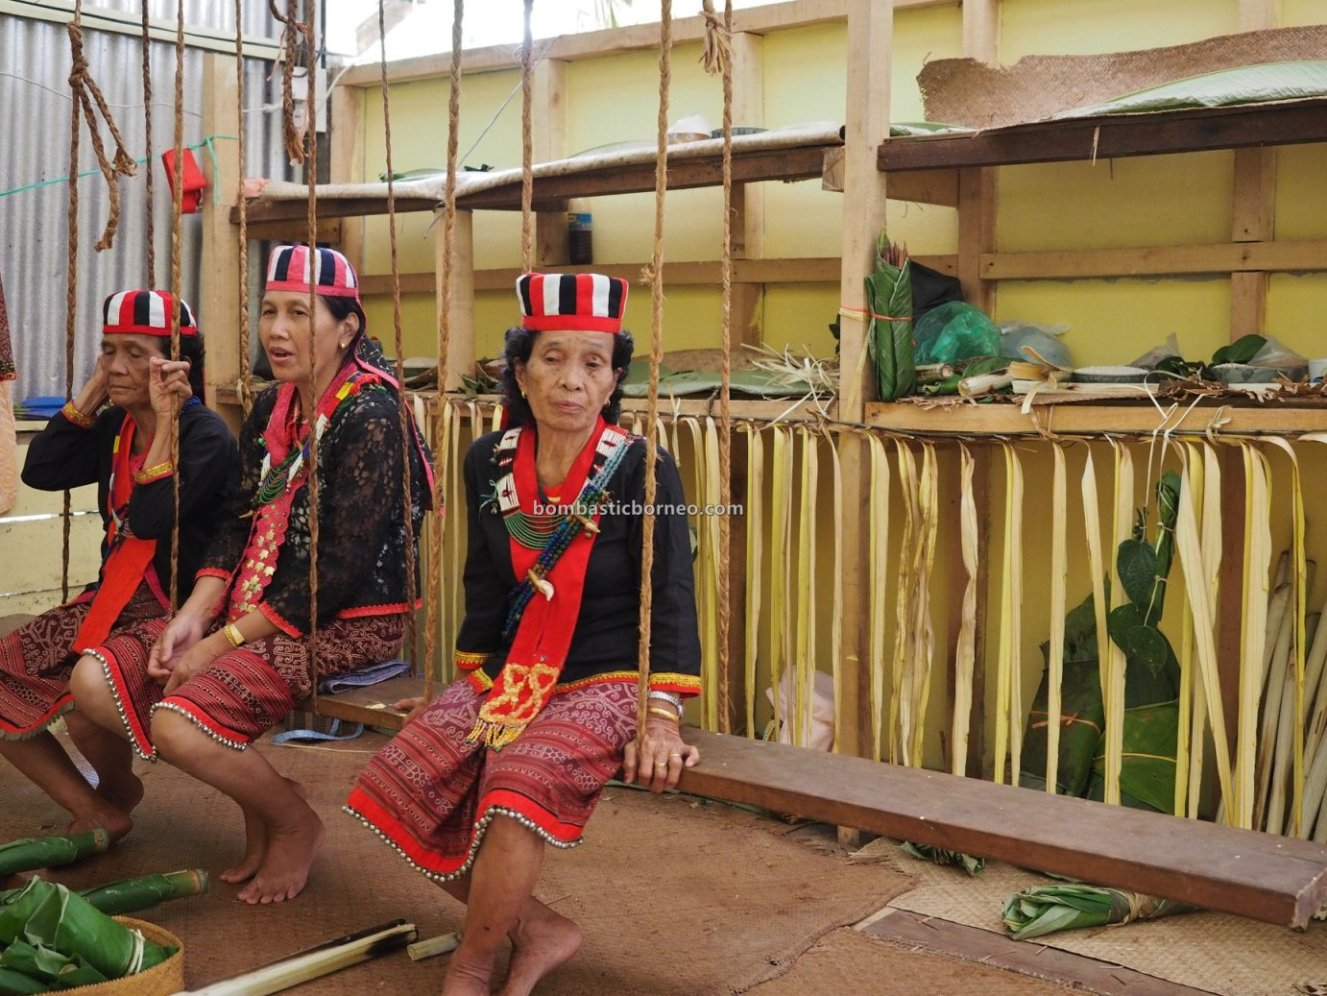 Serasot village, Gawea Sowa, Gawai Harvest Festival, indigenous, traditional, culture, Bau, Kuching, Sarawak, dayak bidayuh, Ethnic, tribe, Tourism, tourist attraction, travel guide, Transborneo,